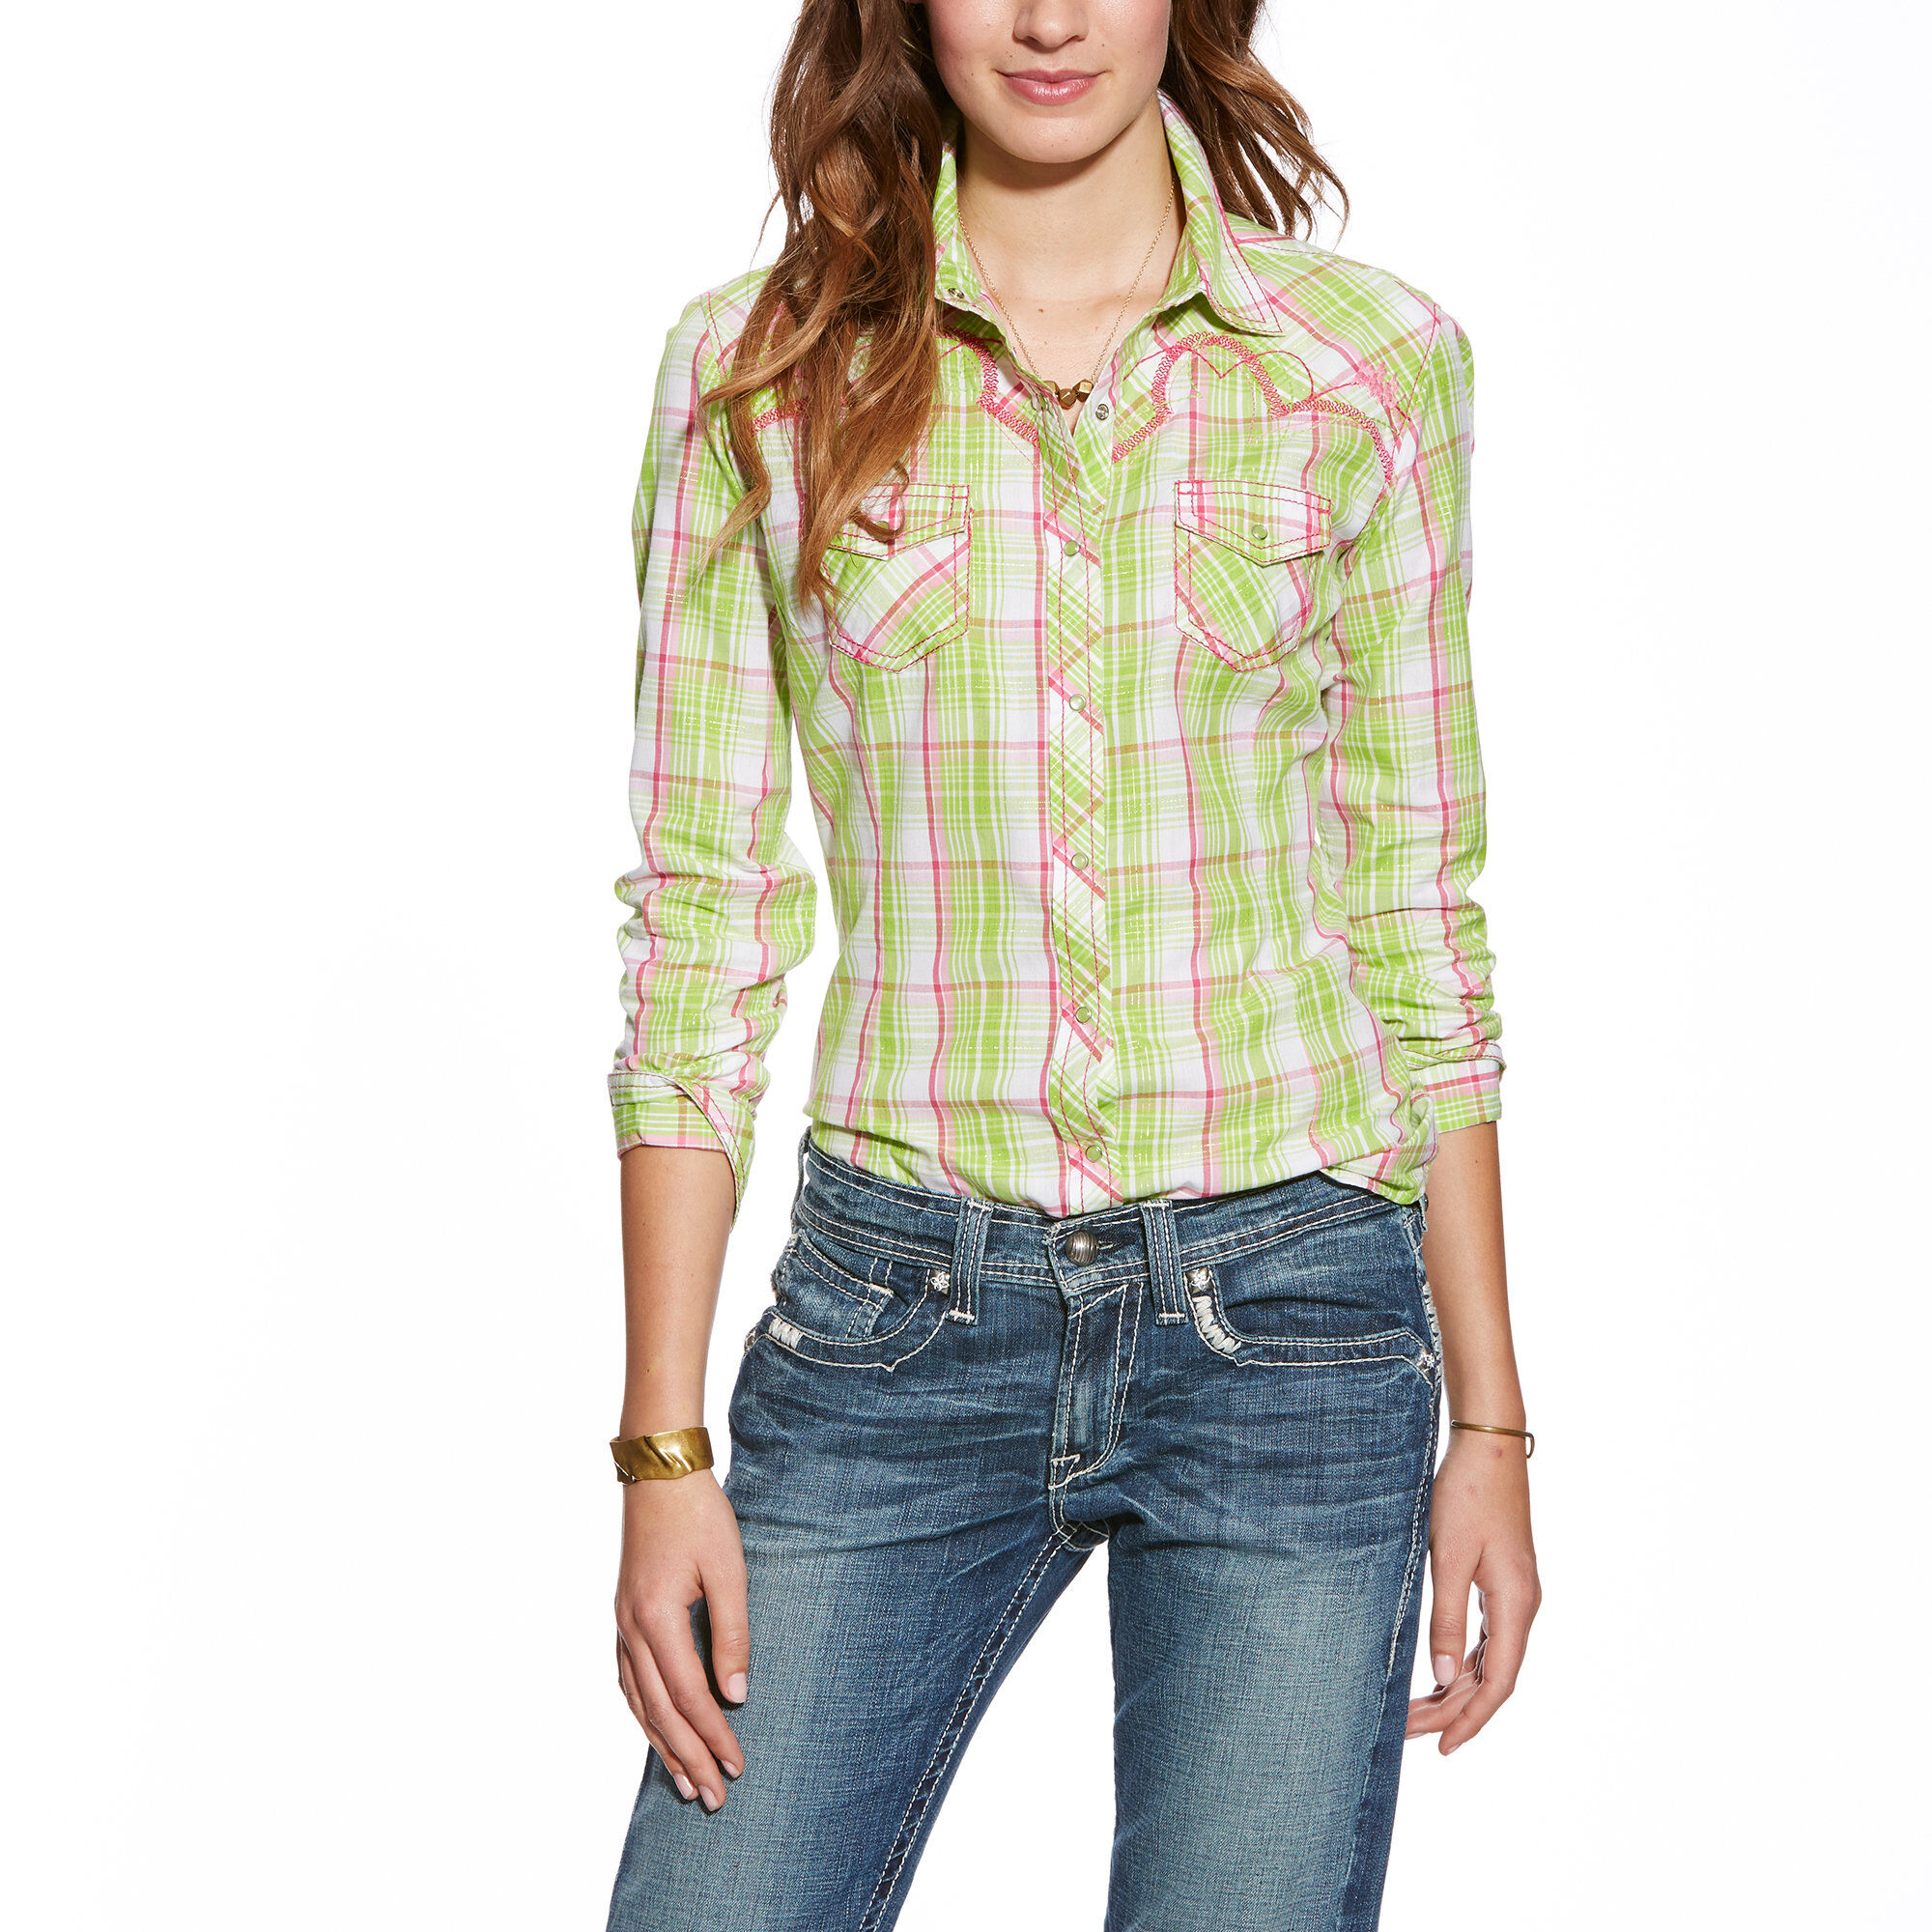 dbabf2a4 Images. Brooke Fitted Plaid Snap Fitted Shirt